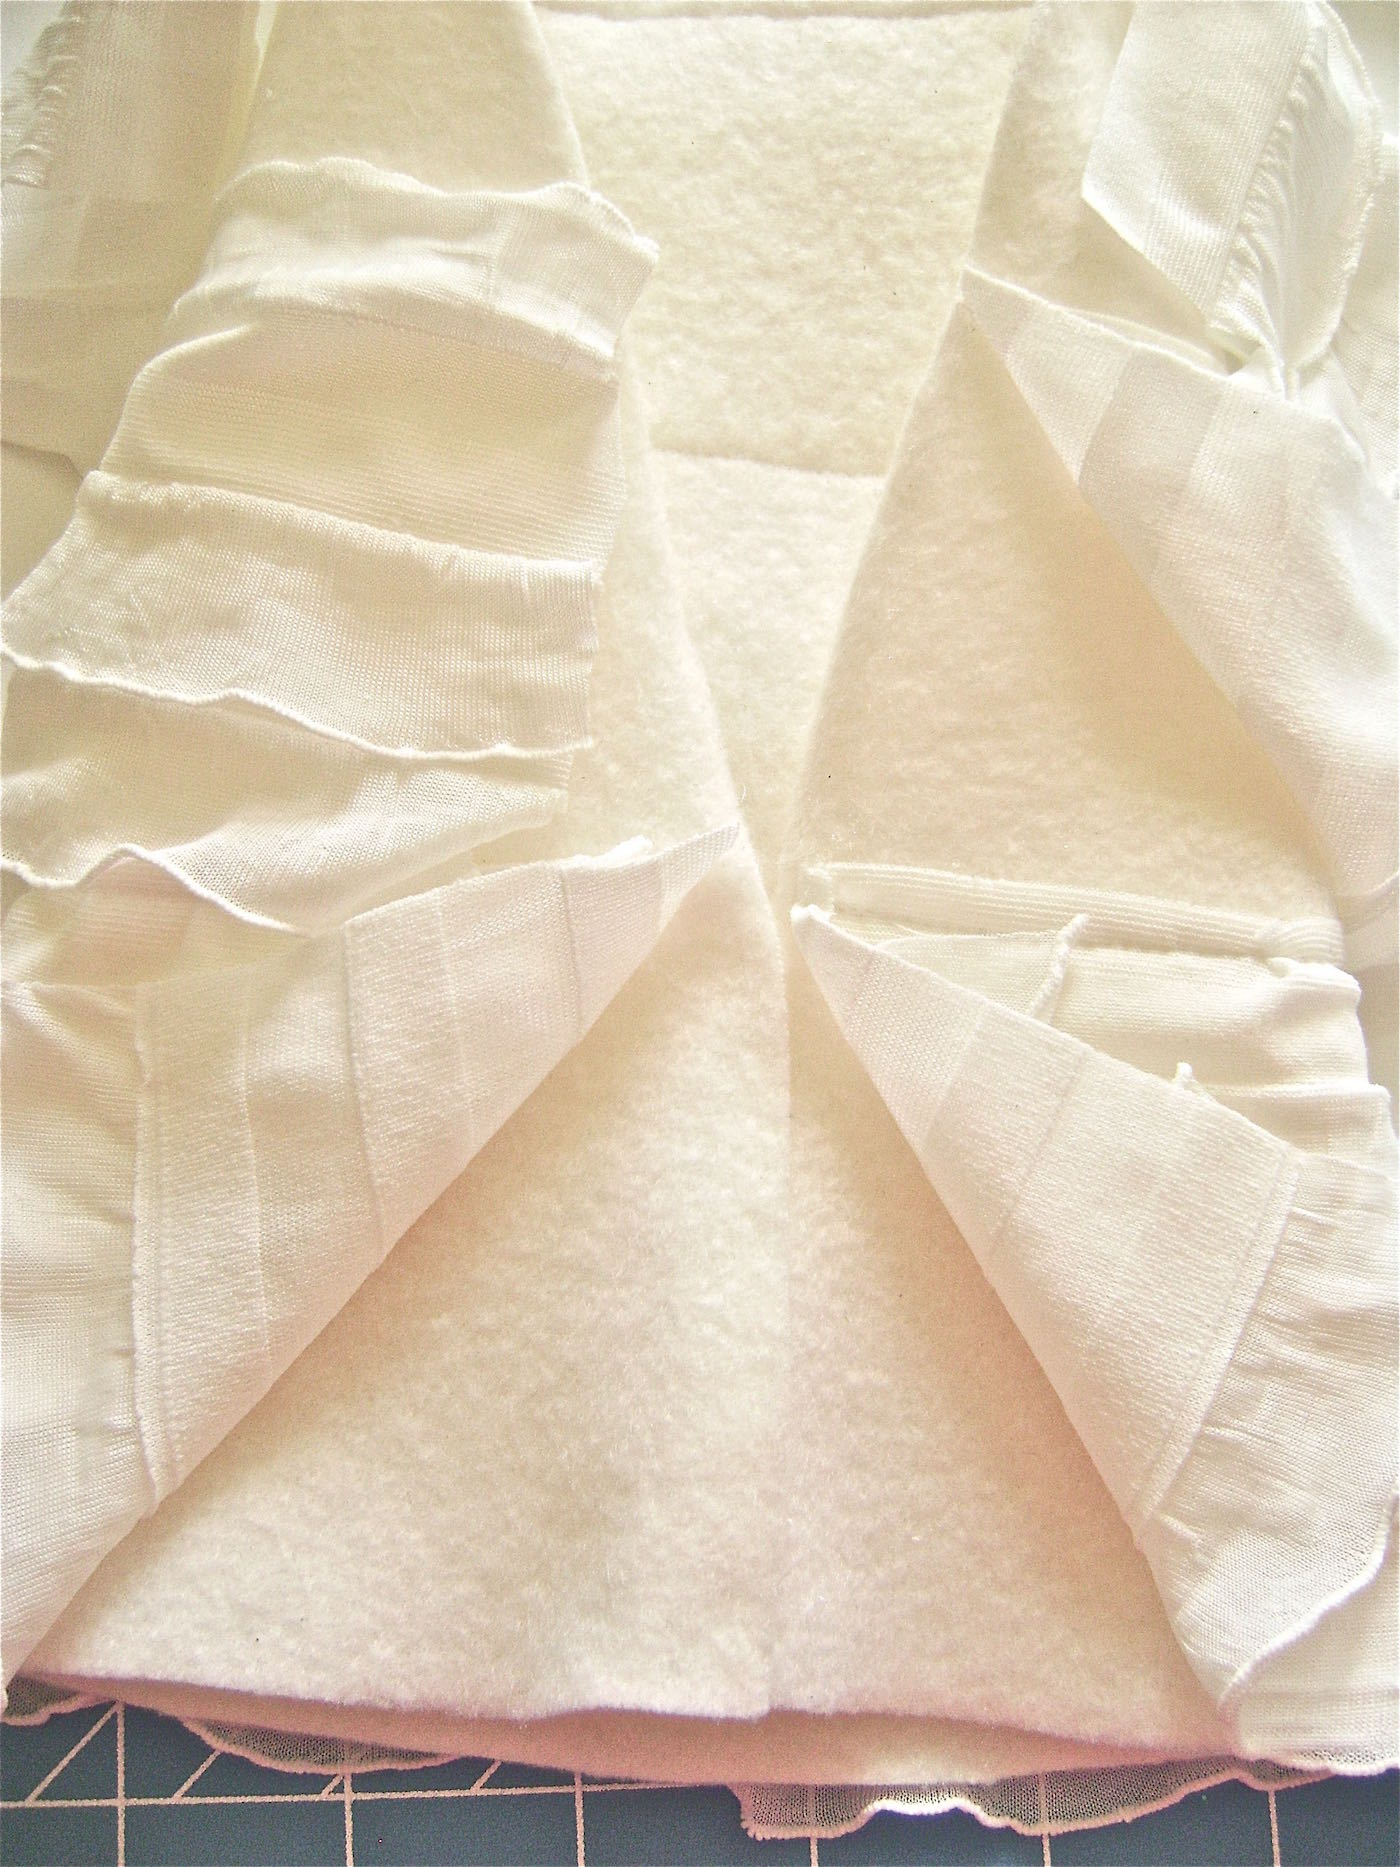 """step 8 - Connect the lower back seam by moving the ruffles aside and overlapping the bottom 3"""" of fleece. Hot glue together."""